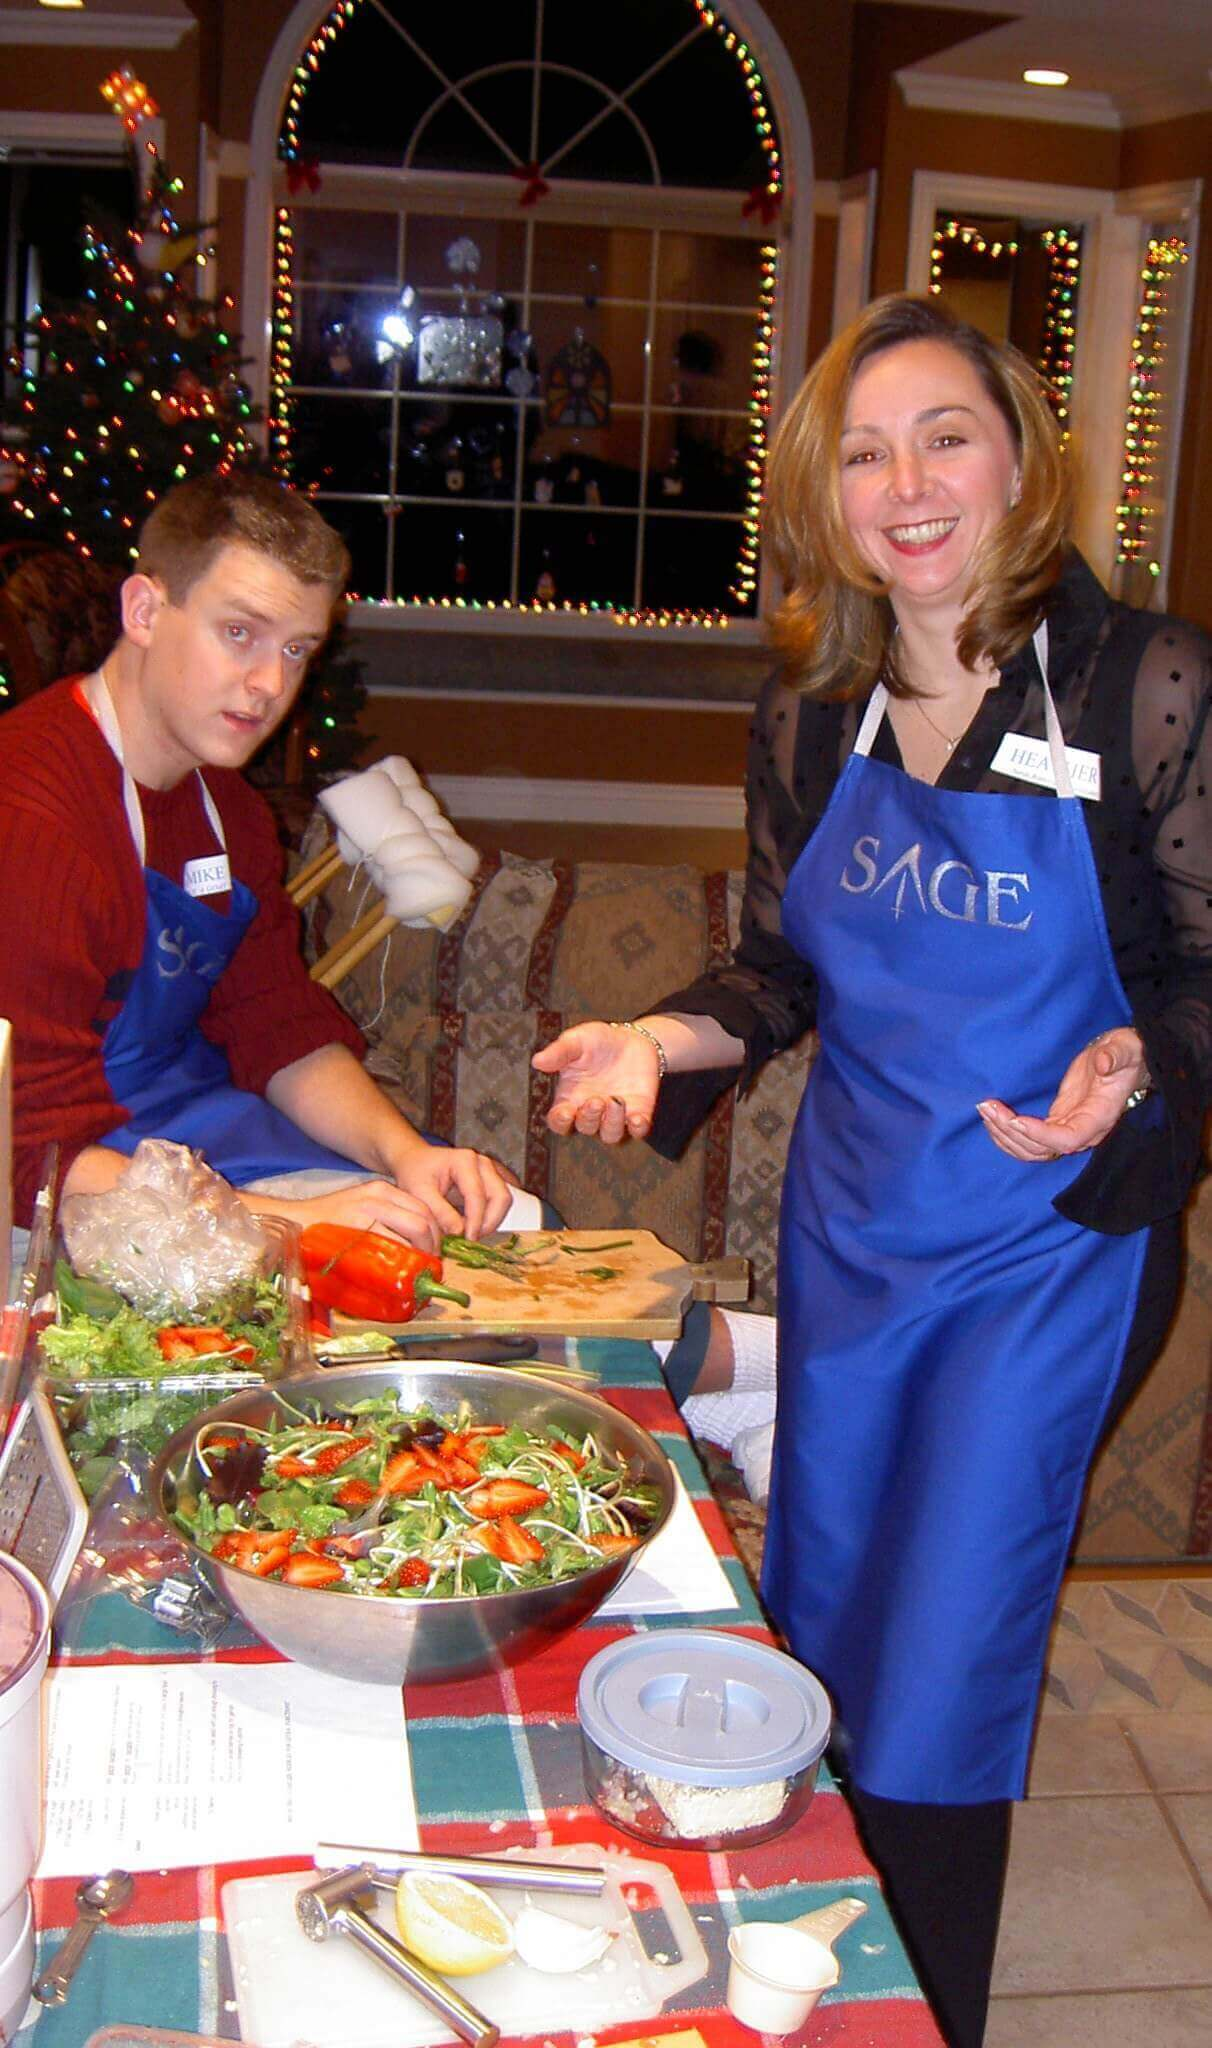 Heather Hilliard Sage Cooking Party